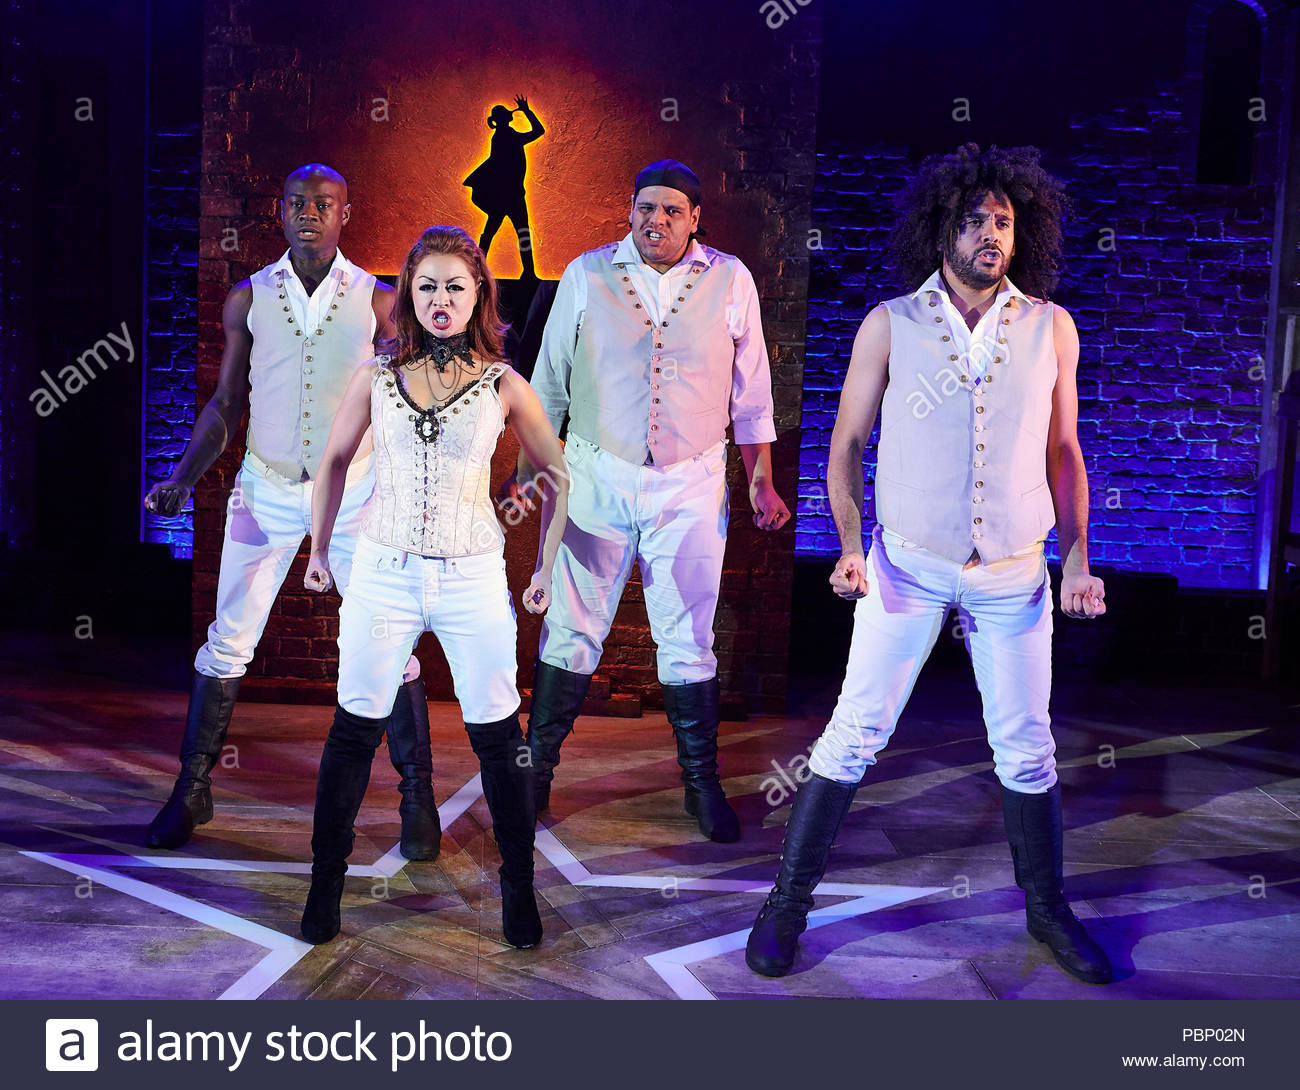 Spamilton. An American Parody.Written and directed by Gerard Alessandrini, choregraphed by Gerry McIntyre. With Eddie Elliott,  Julie Yammanee, Mark Akinfolarin, Jason Denton. Opens at The Mernier Chocolate Factory Theatre on 24/7/18. CREDIT Geraint Lewis EDITORIAL USE ONLY - Stock Image